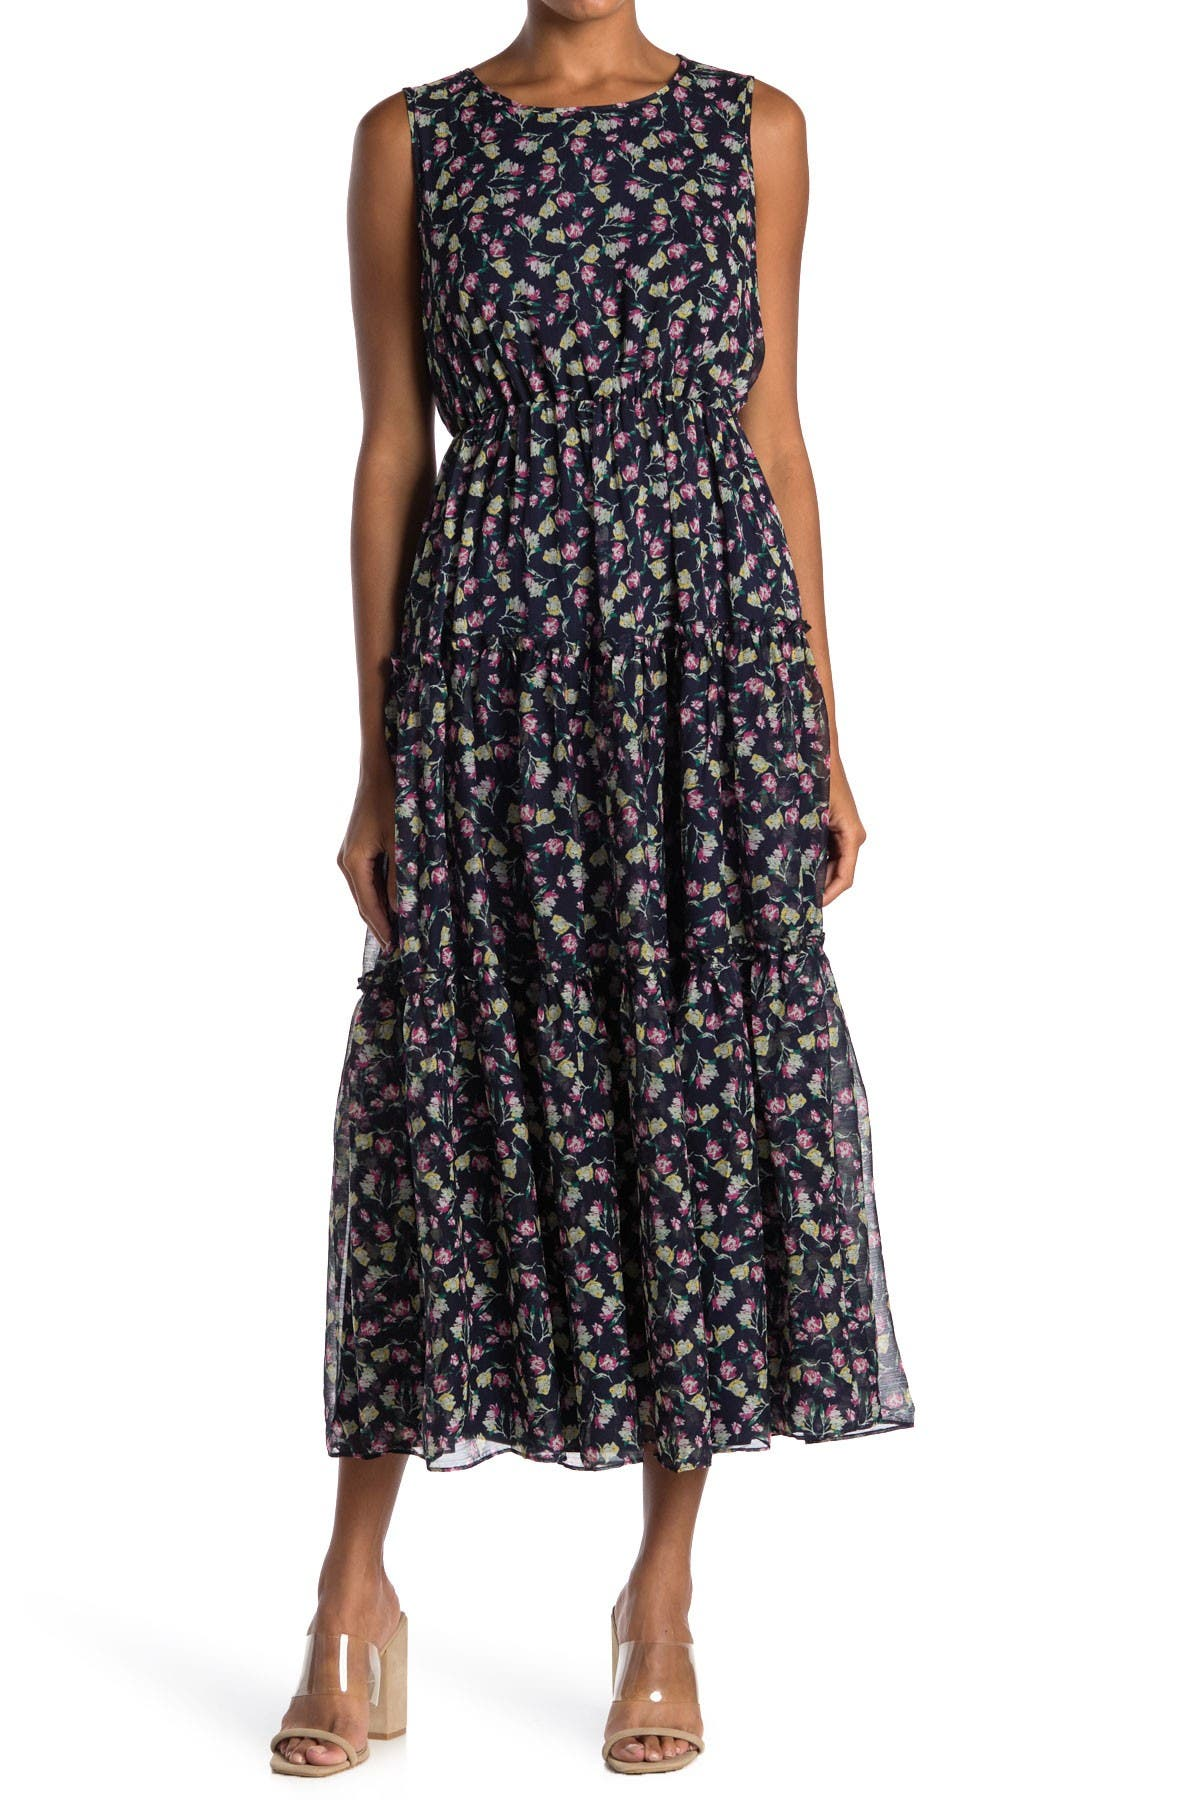 Image of MELLODAY Floral Tiered Maxi Dress